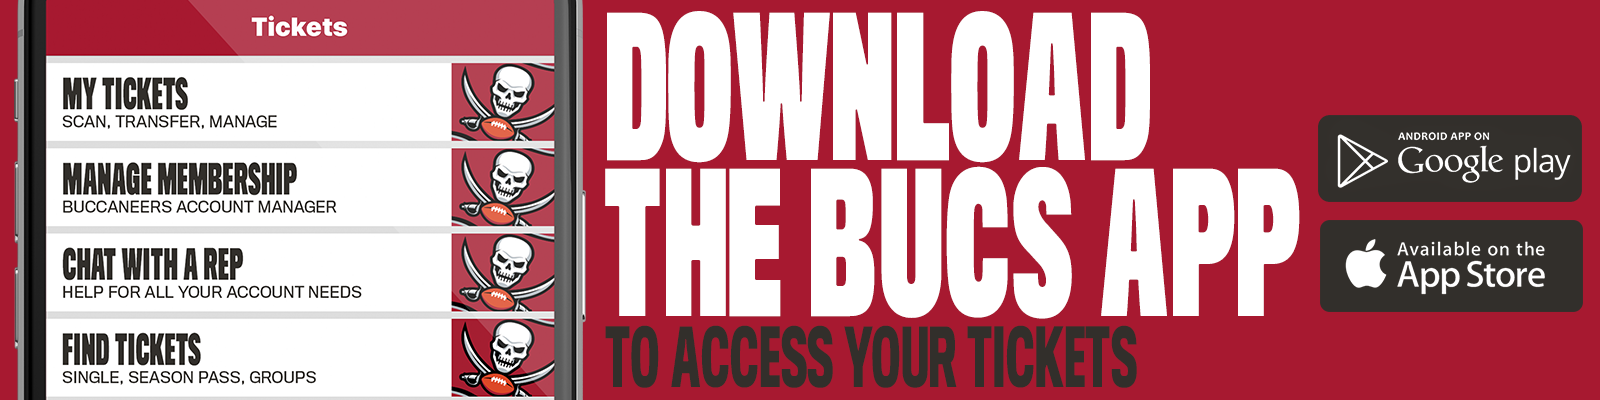 download the bucs app to access your tickets